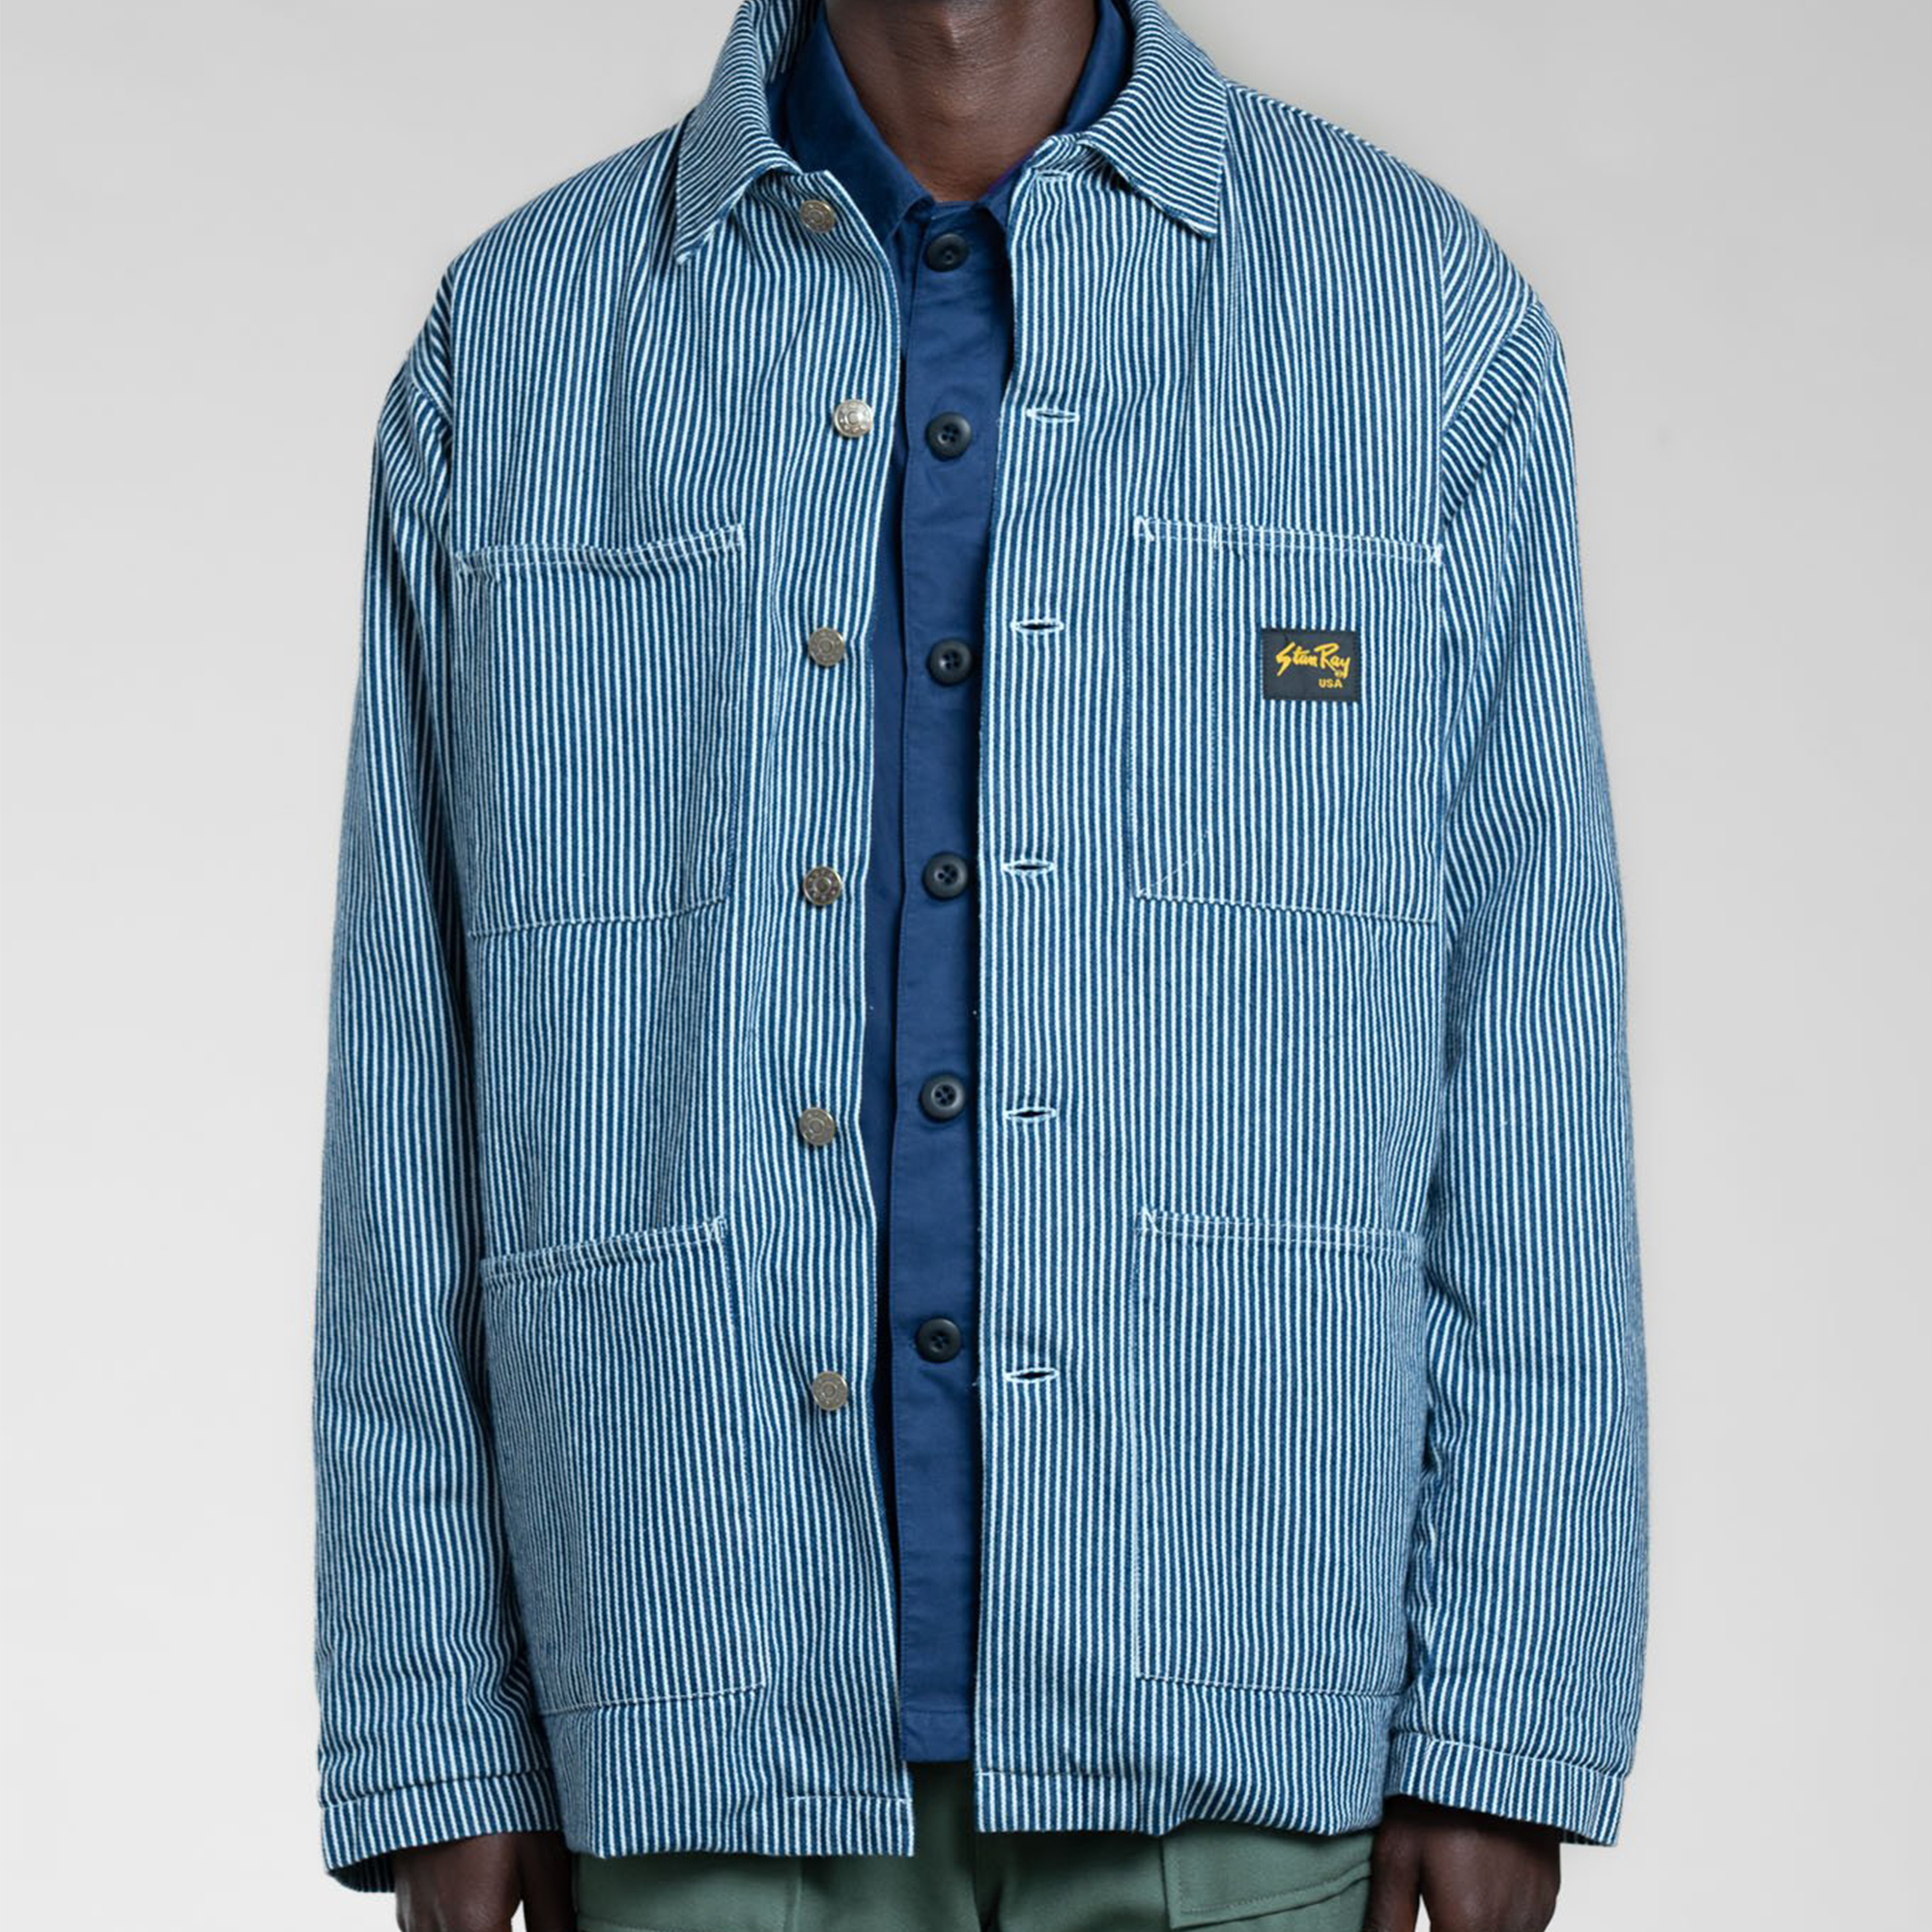 Stan Ray- Hickory stripe lined shop jacket